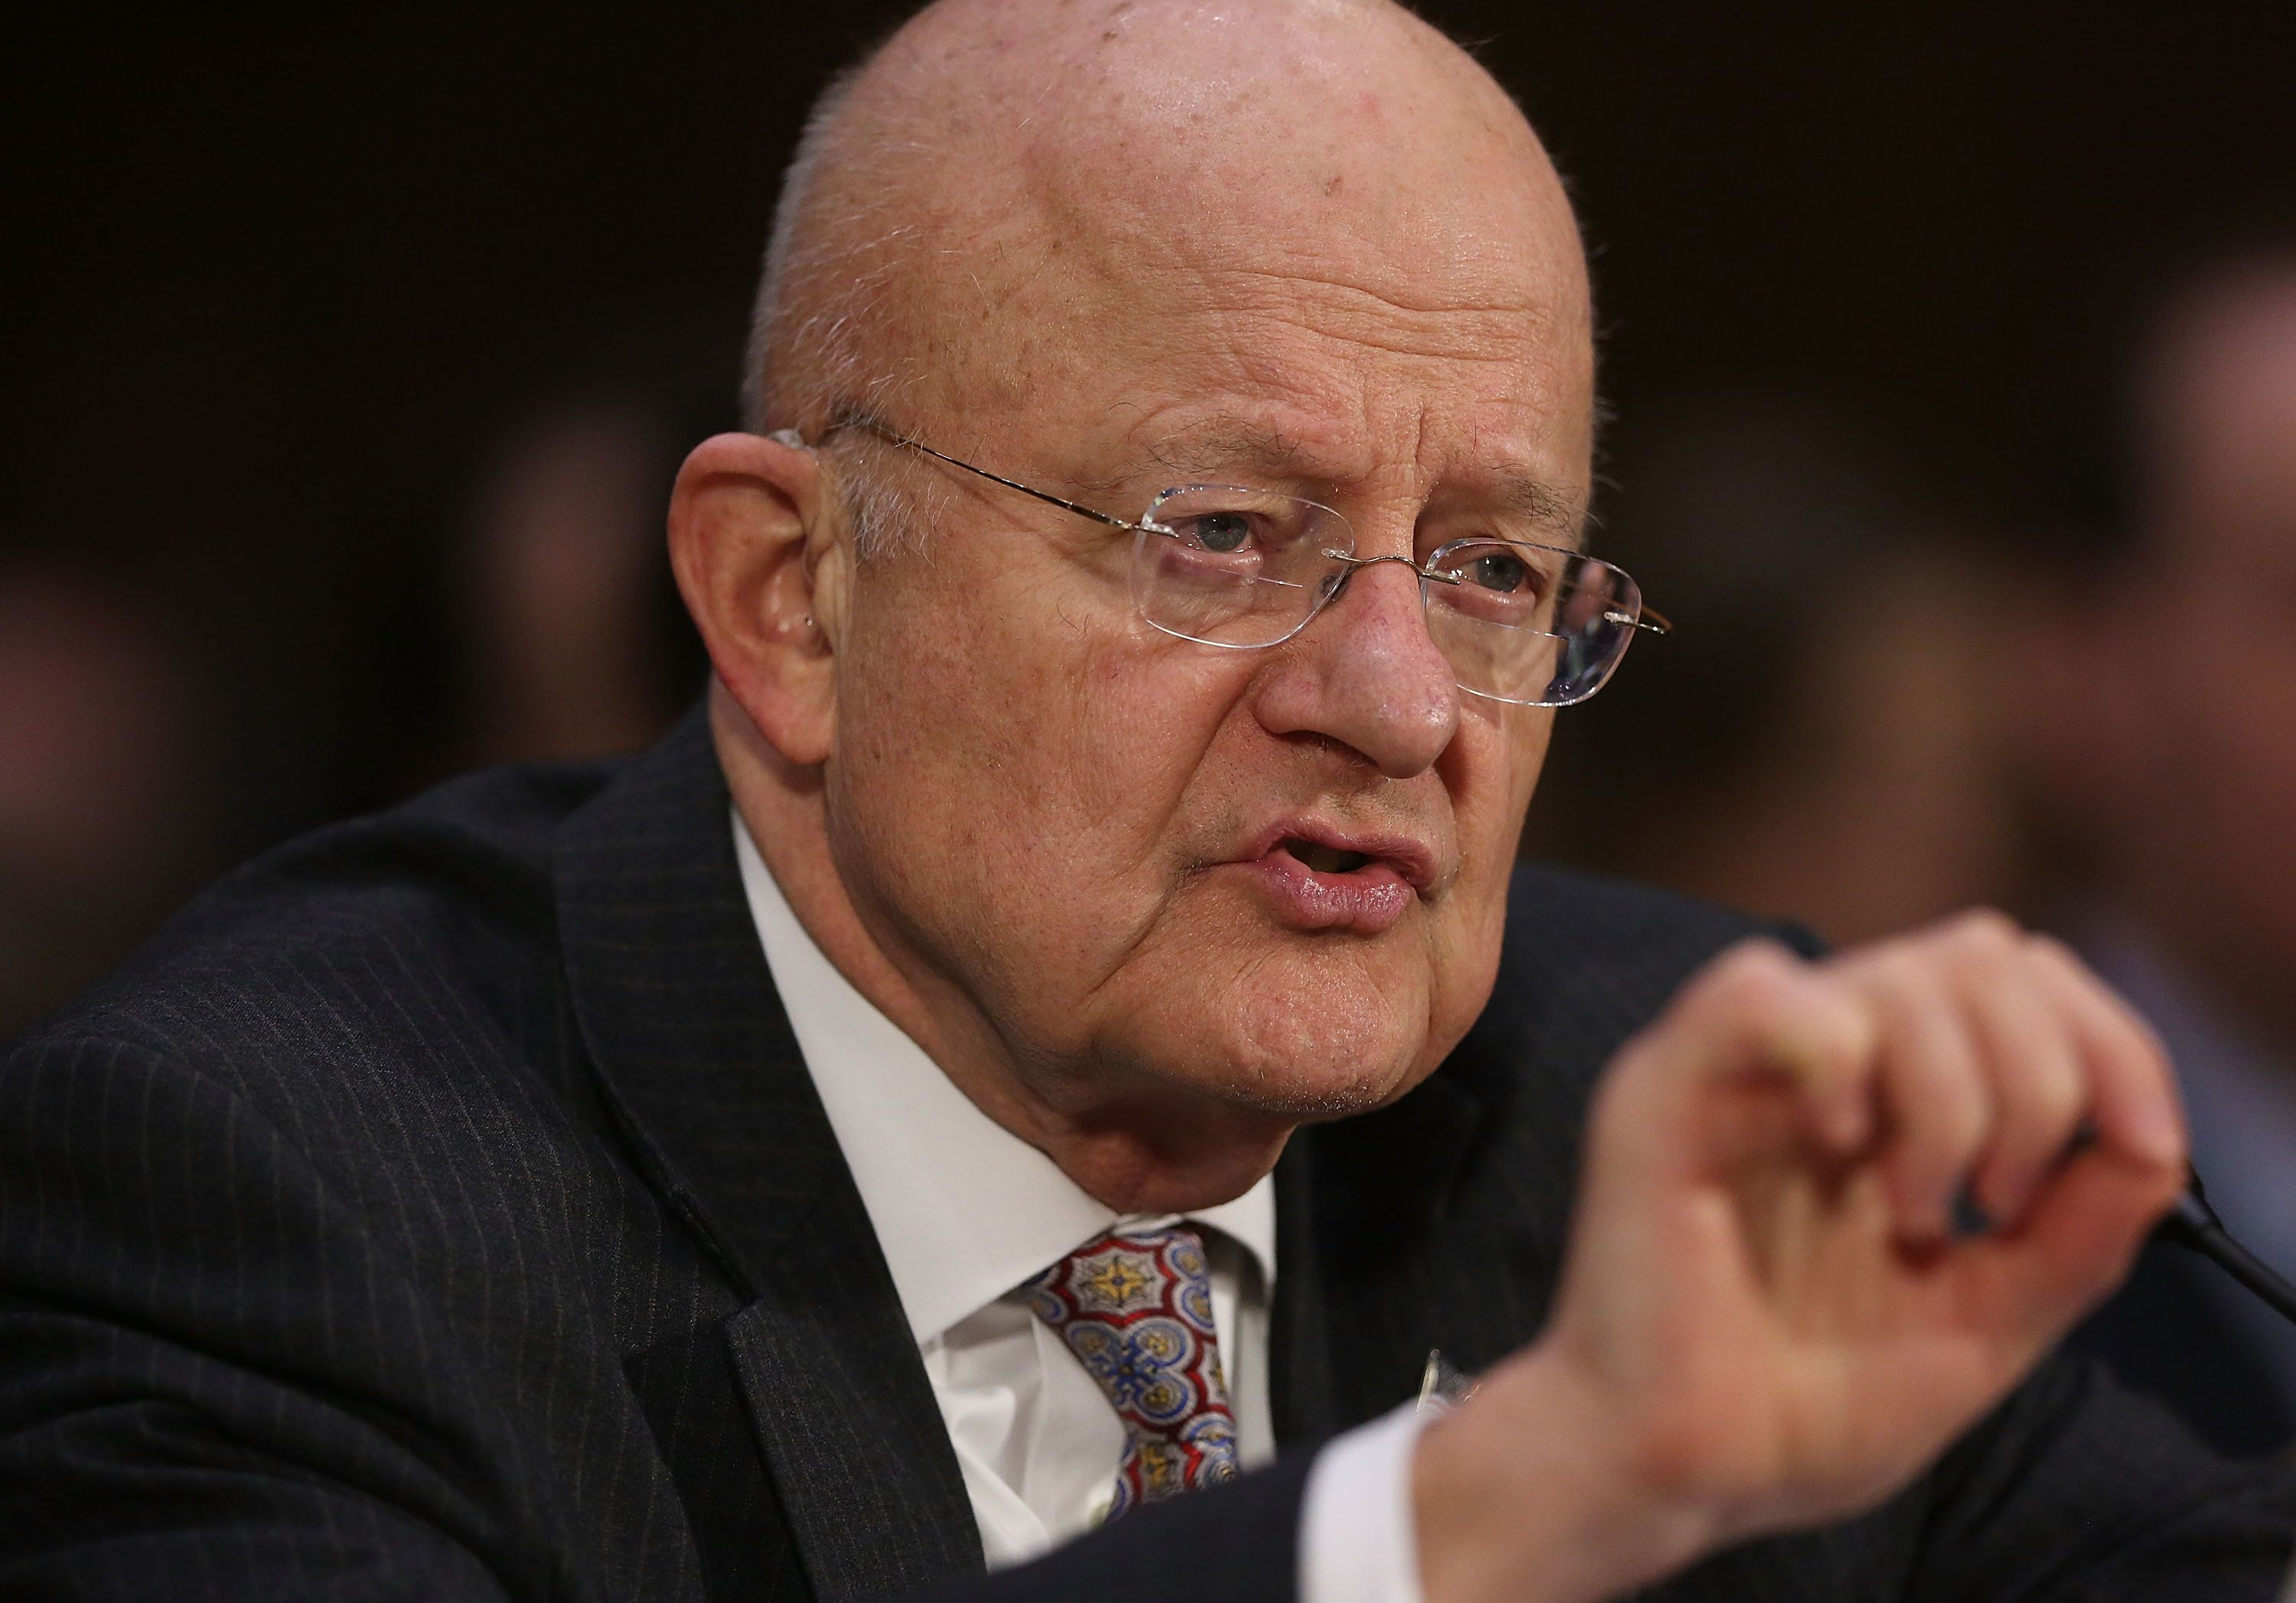 James Clapper, the former director of national intelligence, disputed President Donald Trump's claim that then-President Bara